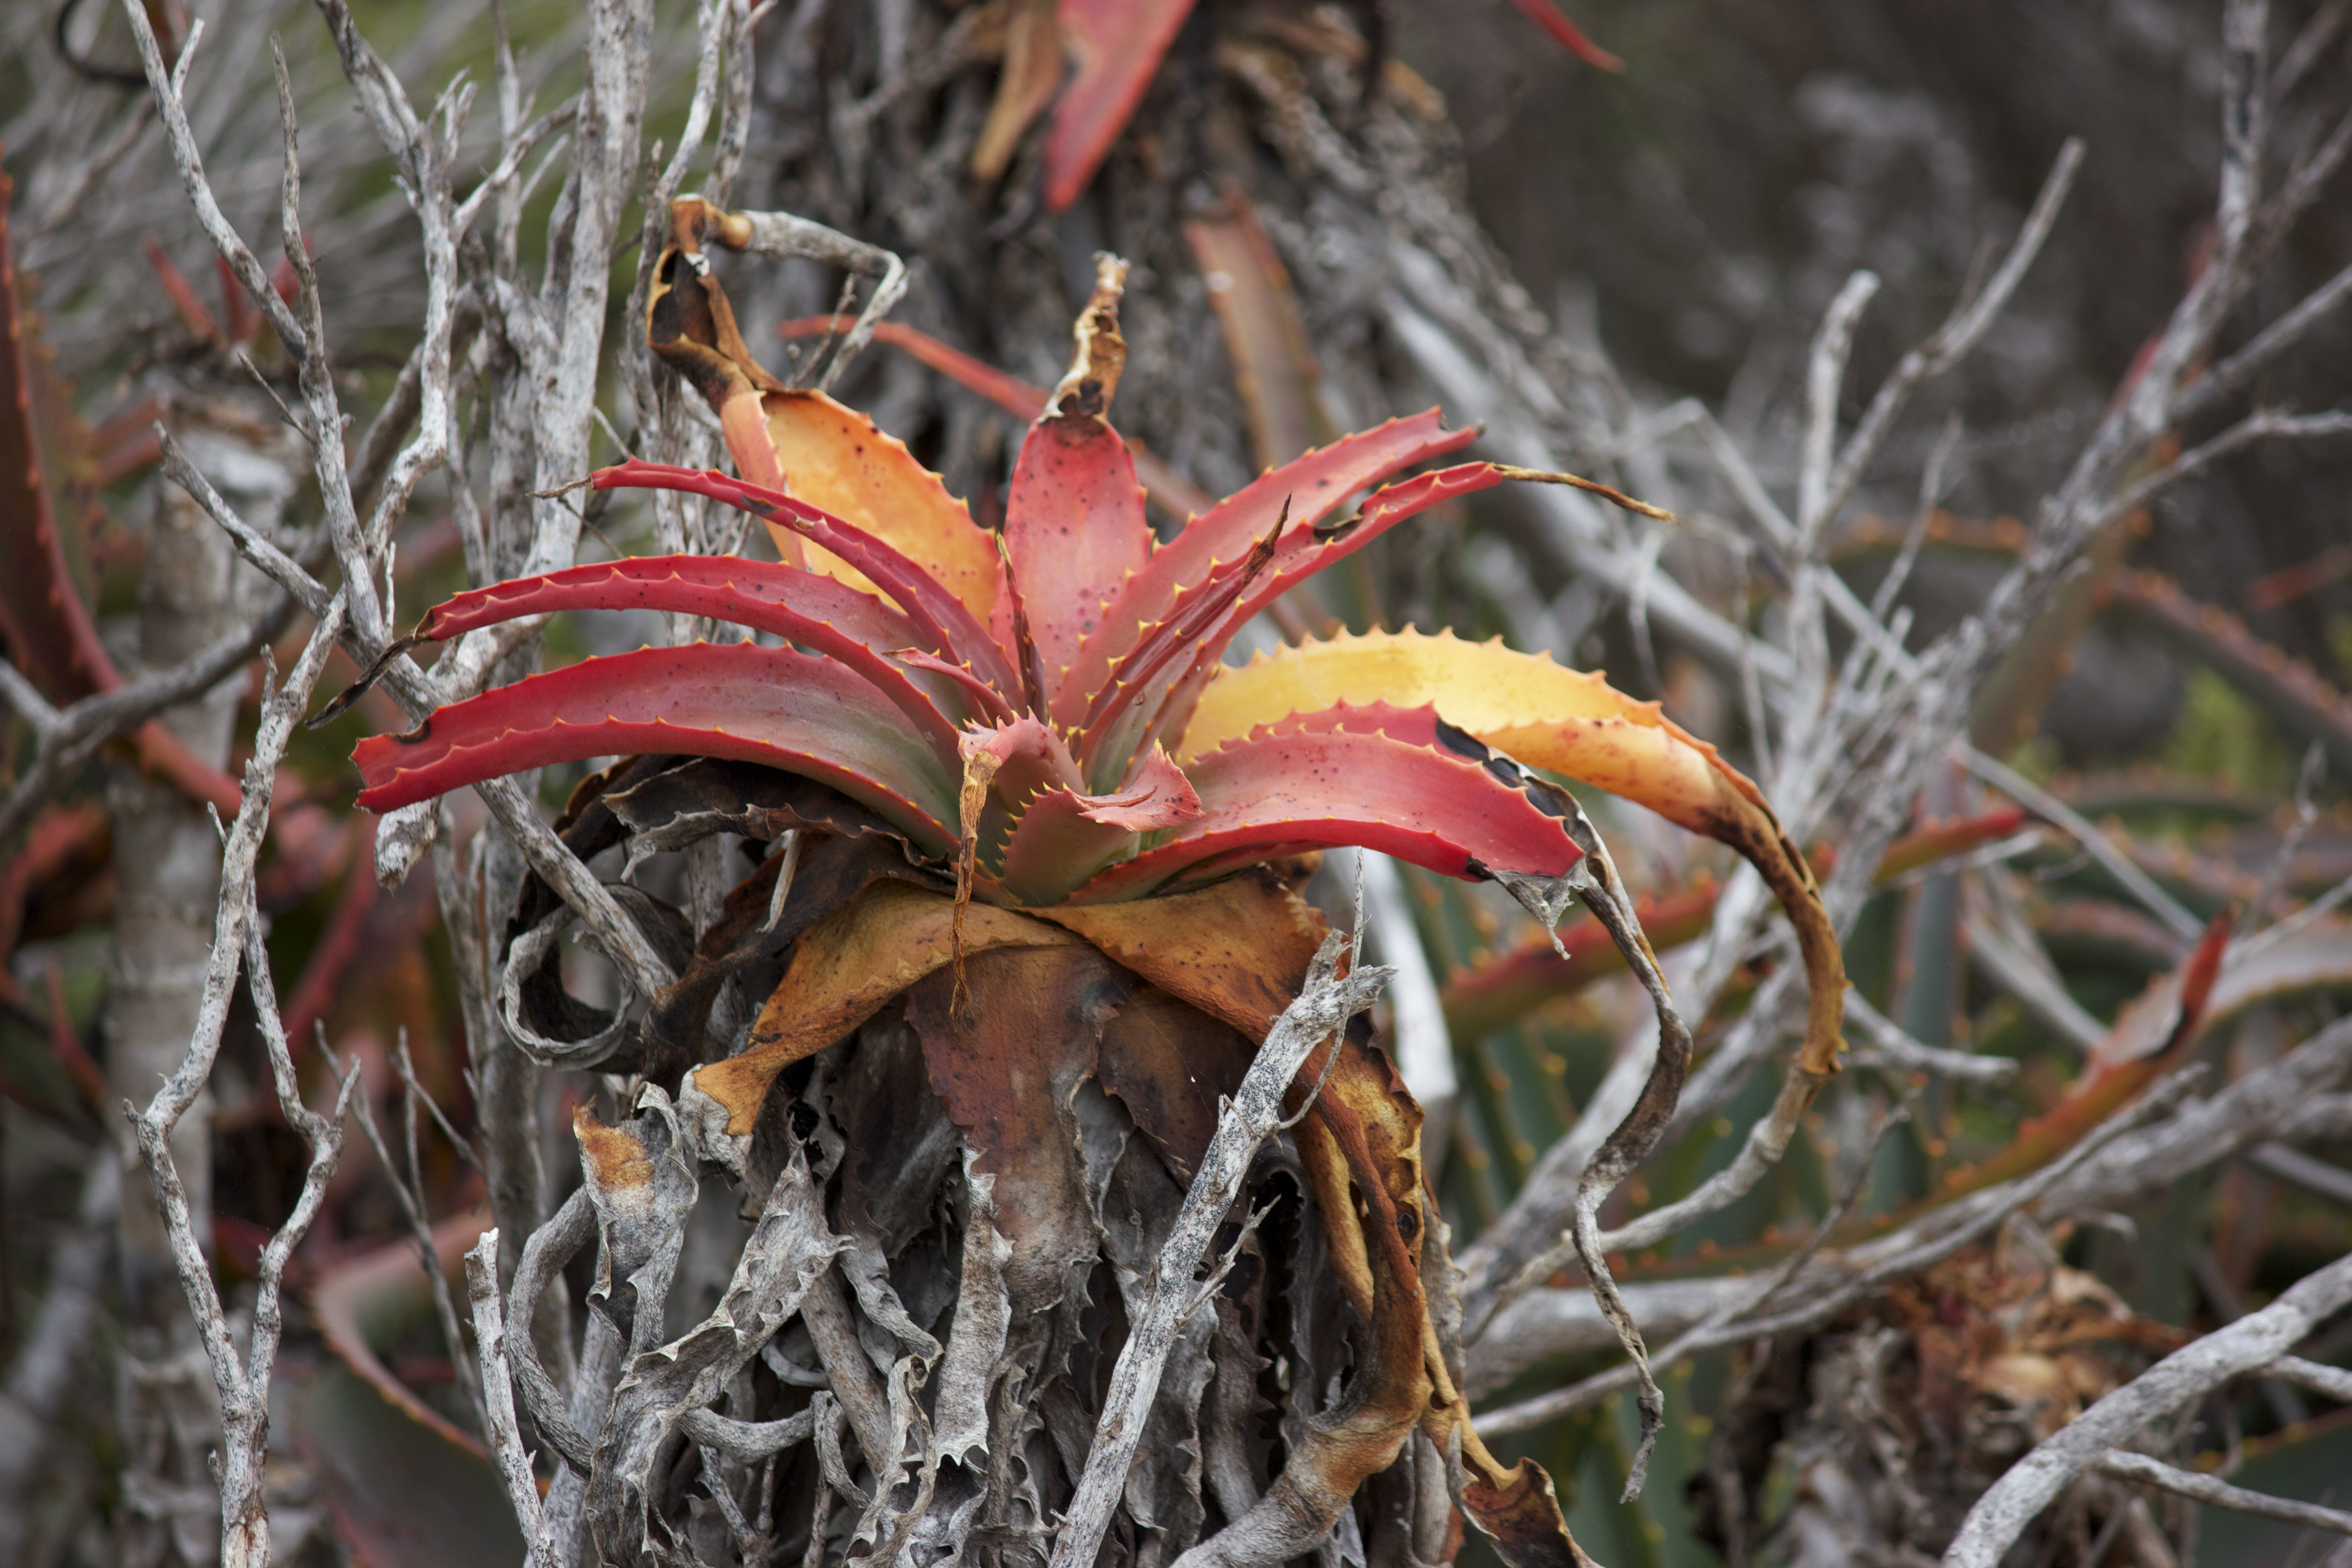 A strange alien-looking red succulent plant grows on a scrubby coastal region.